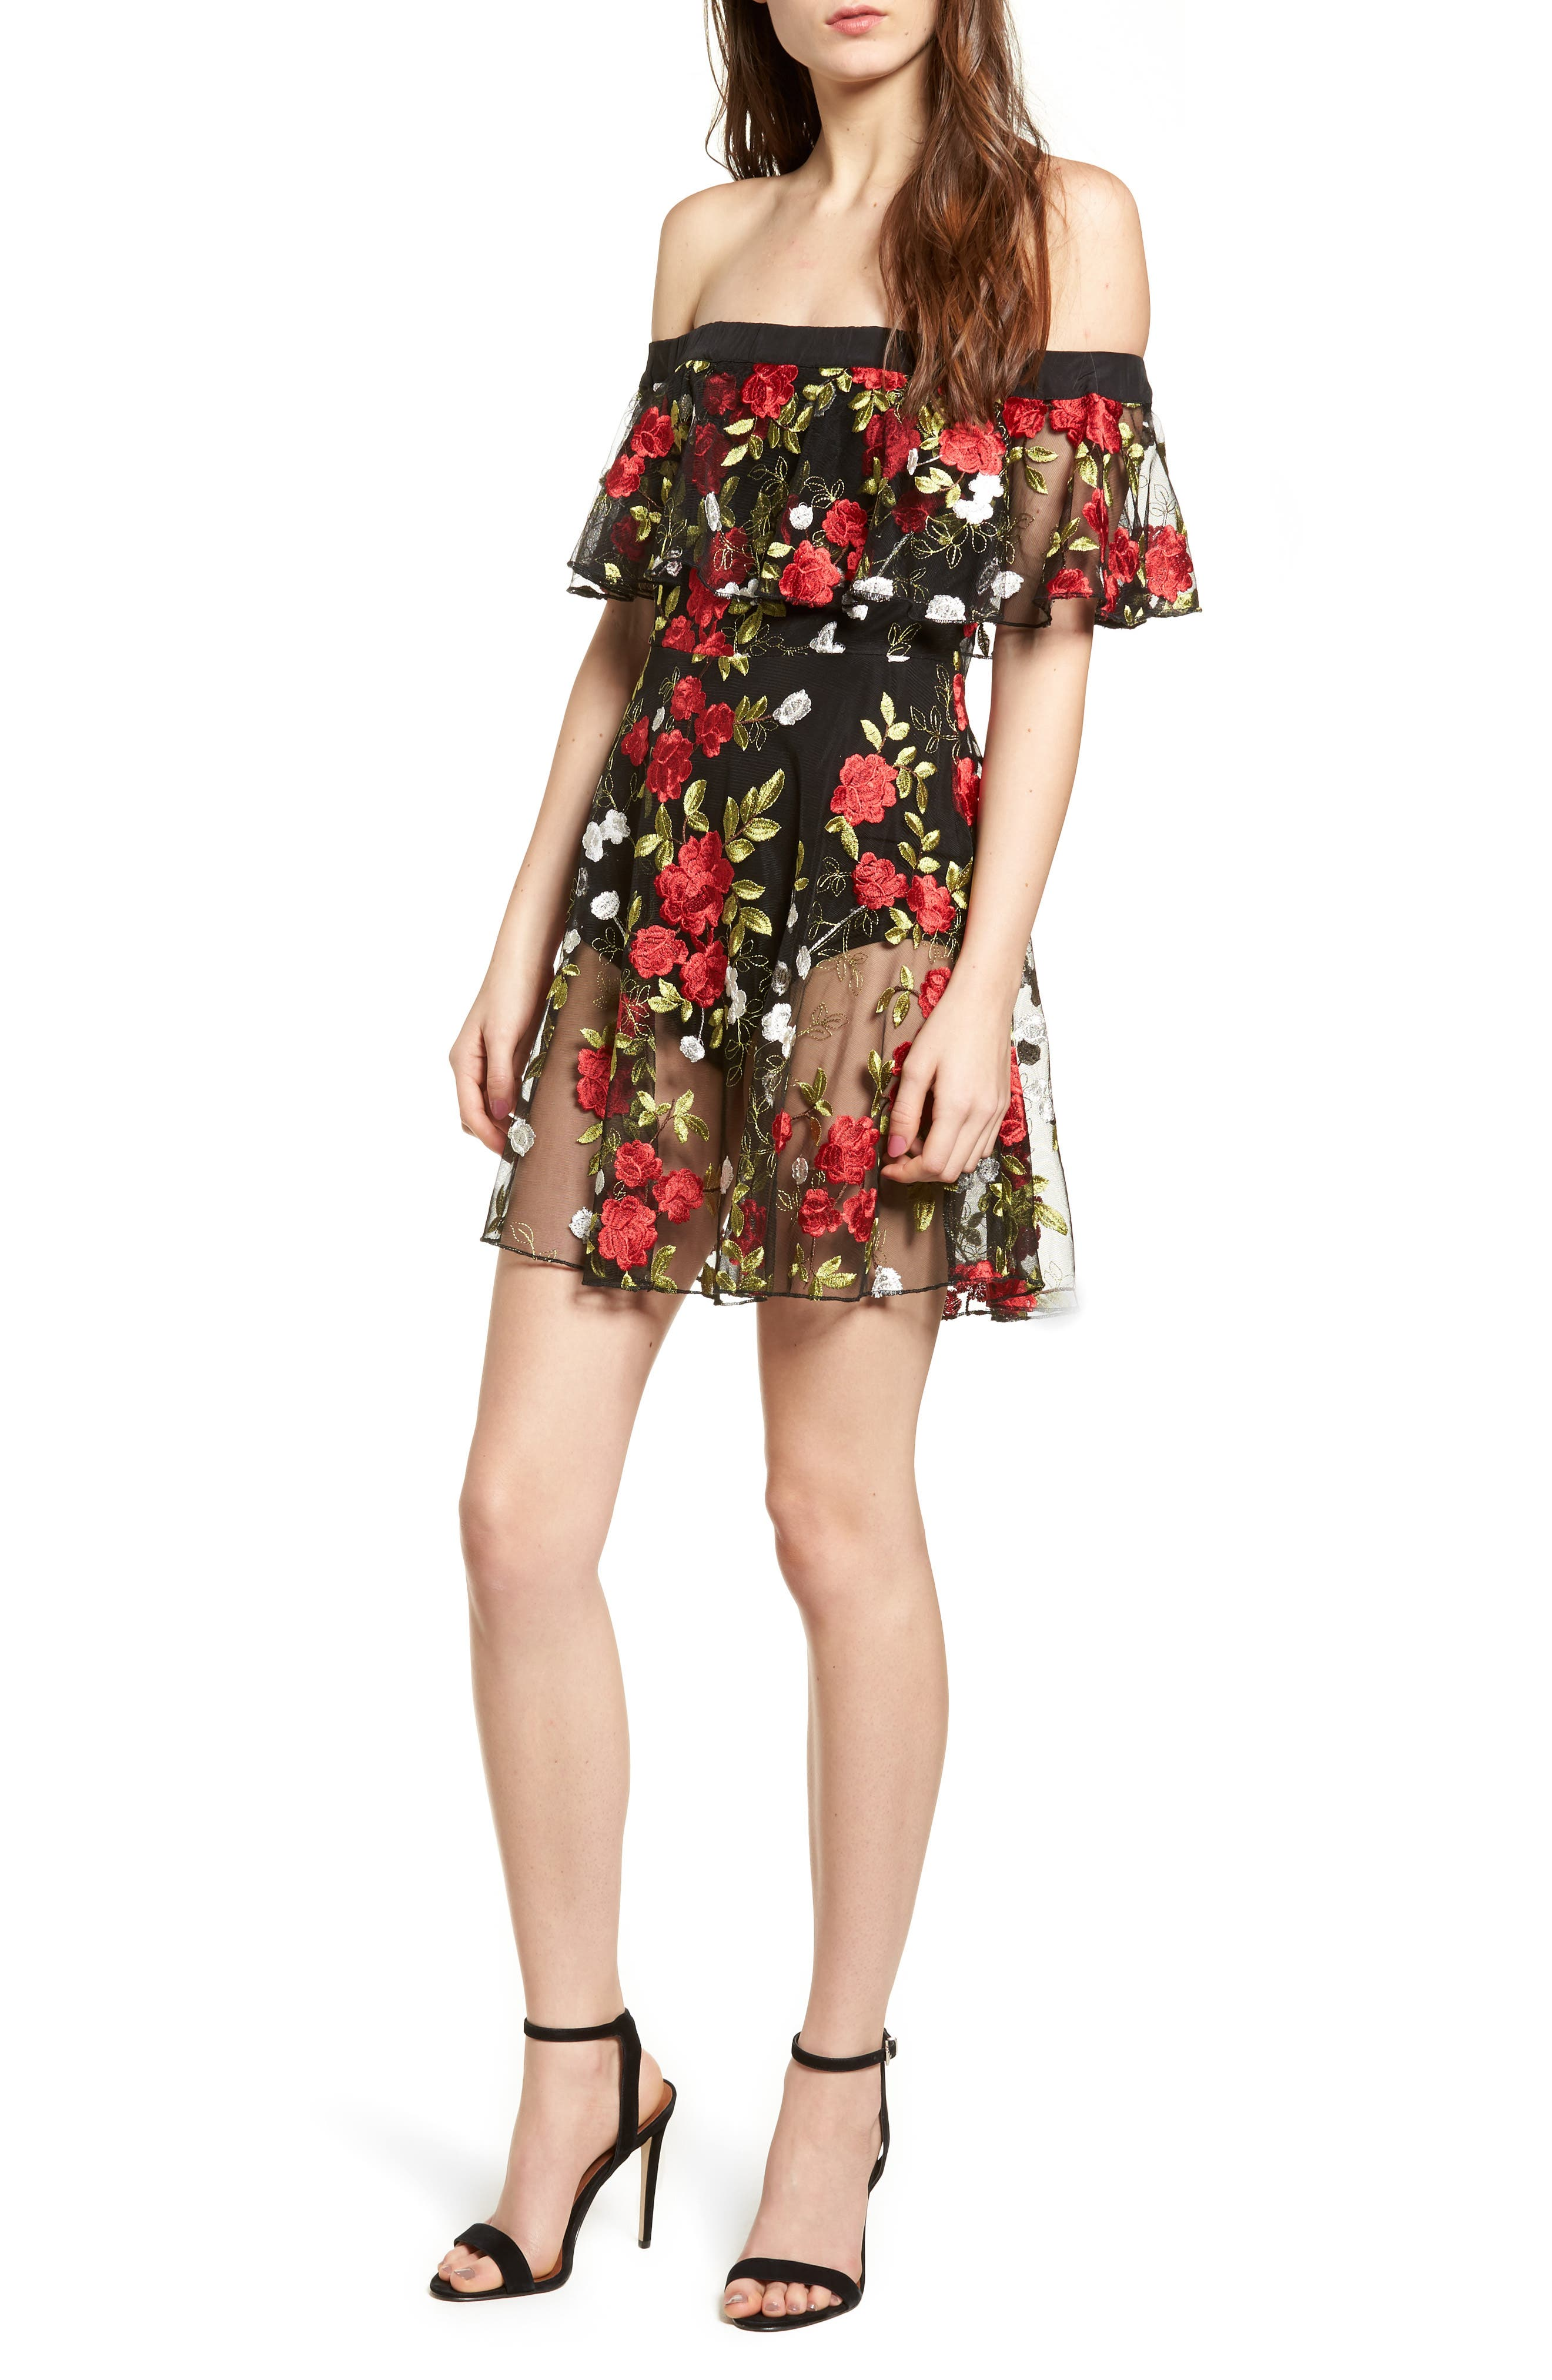 Erica Sheer Embroidered A-Line Dress,                             Main thumbnail 1, color,                             HALCYON